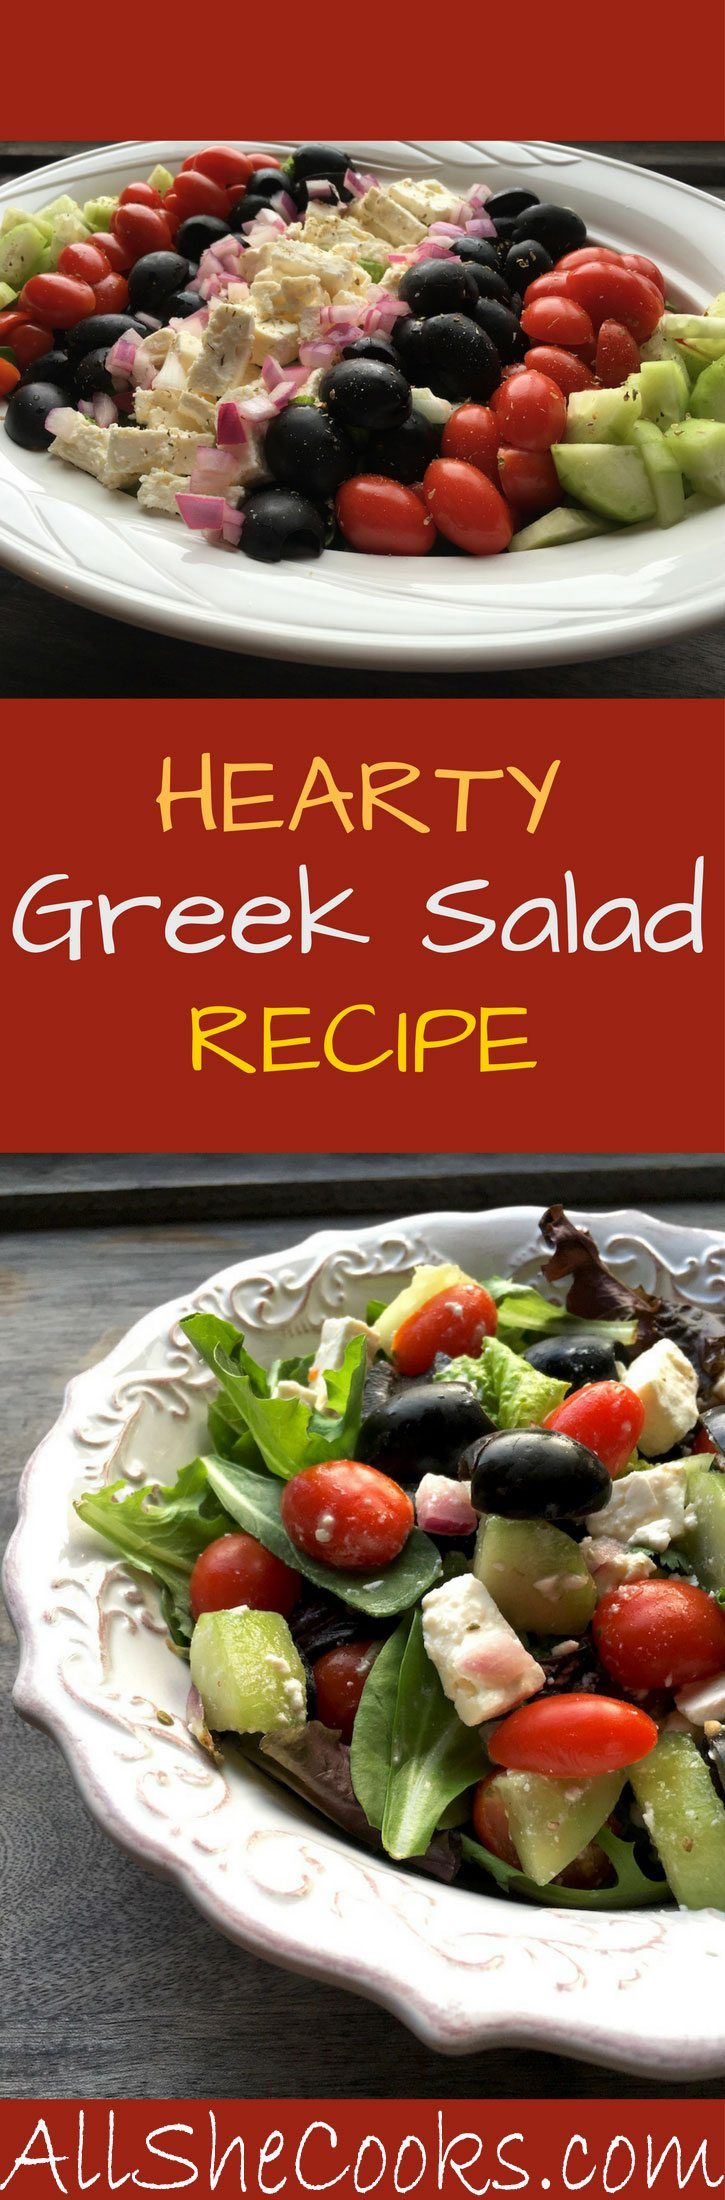 Healthy Greek Salad recipe is a good recipe for getting your diet on track this year.